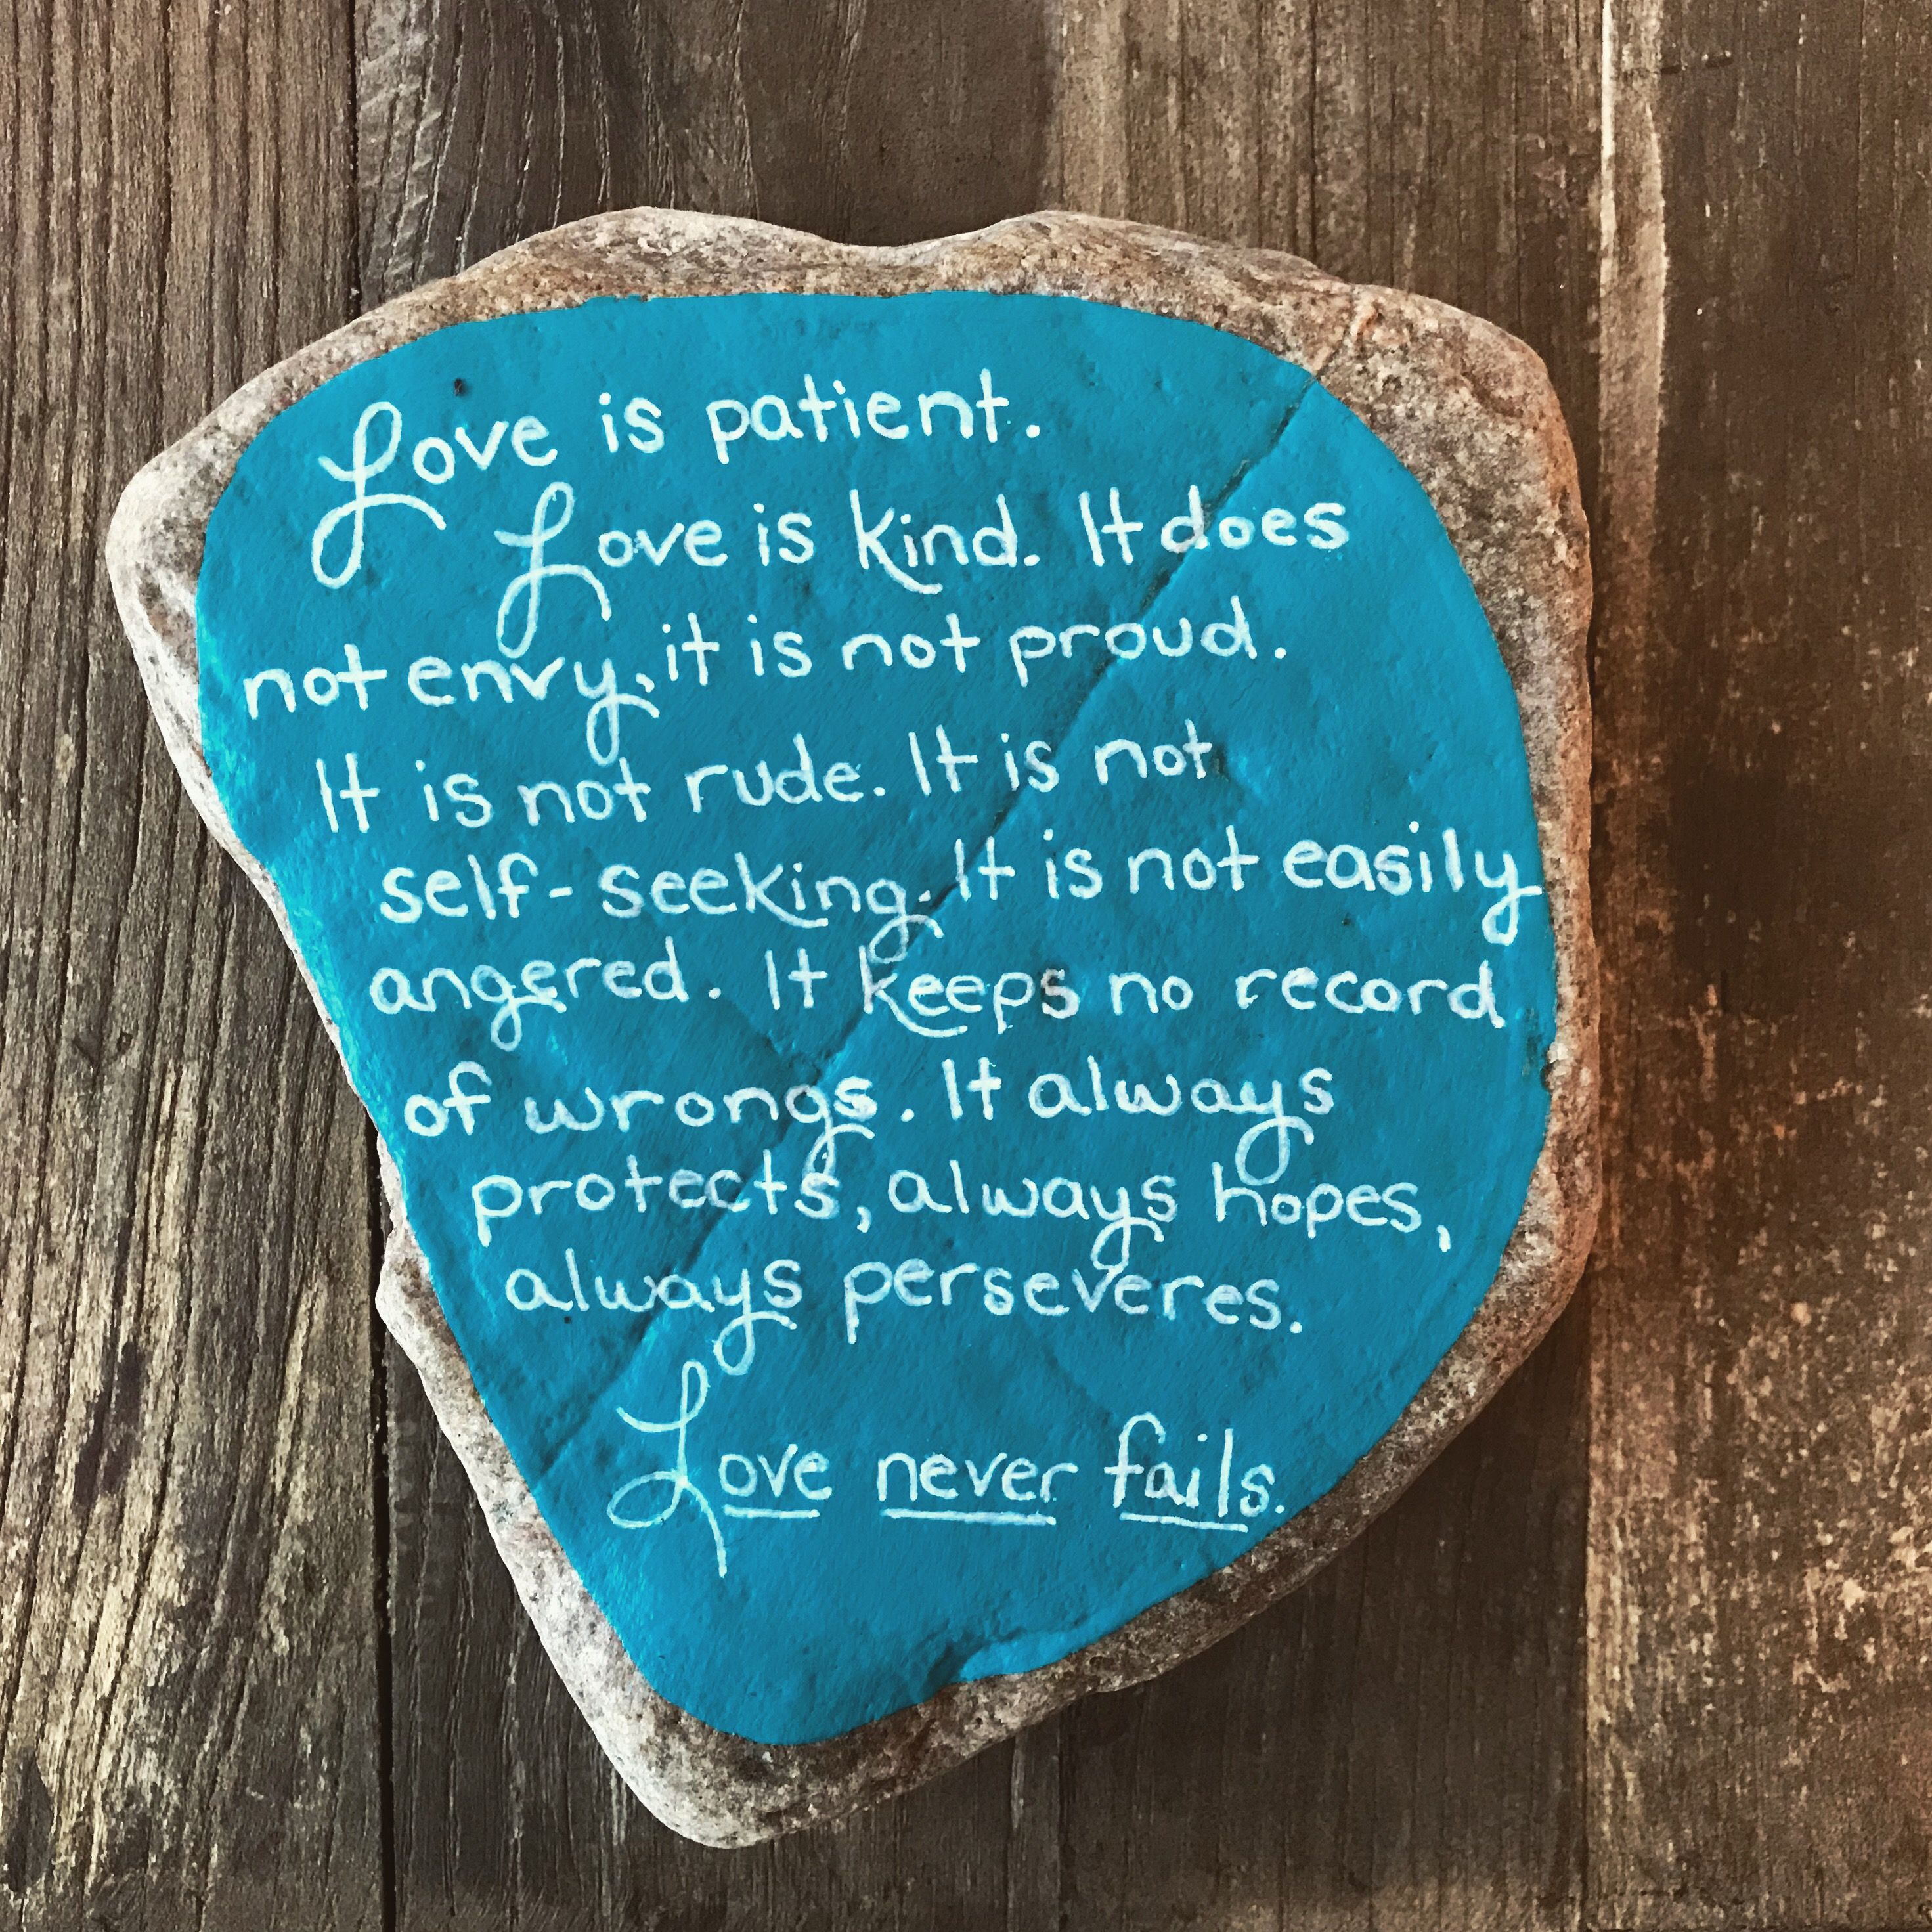 What Is The Bible Verse About Love Is Patient